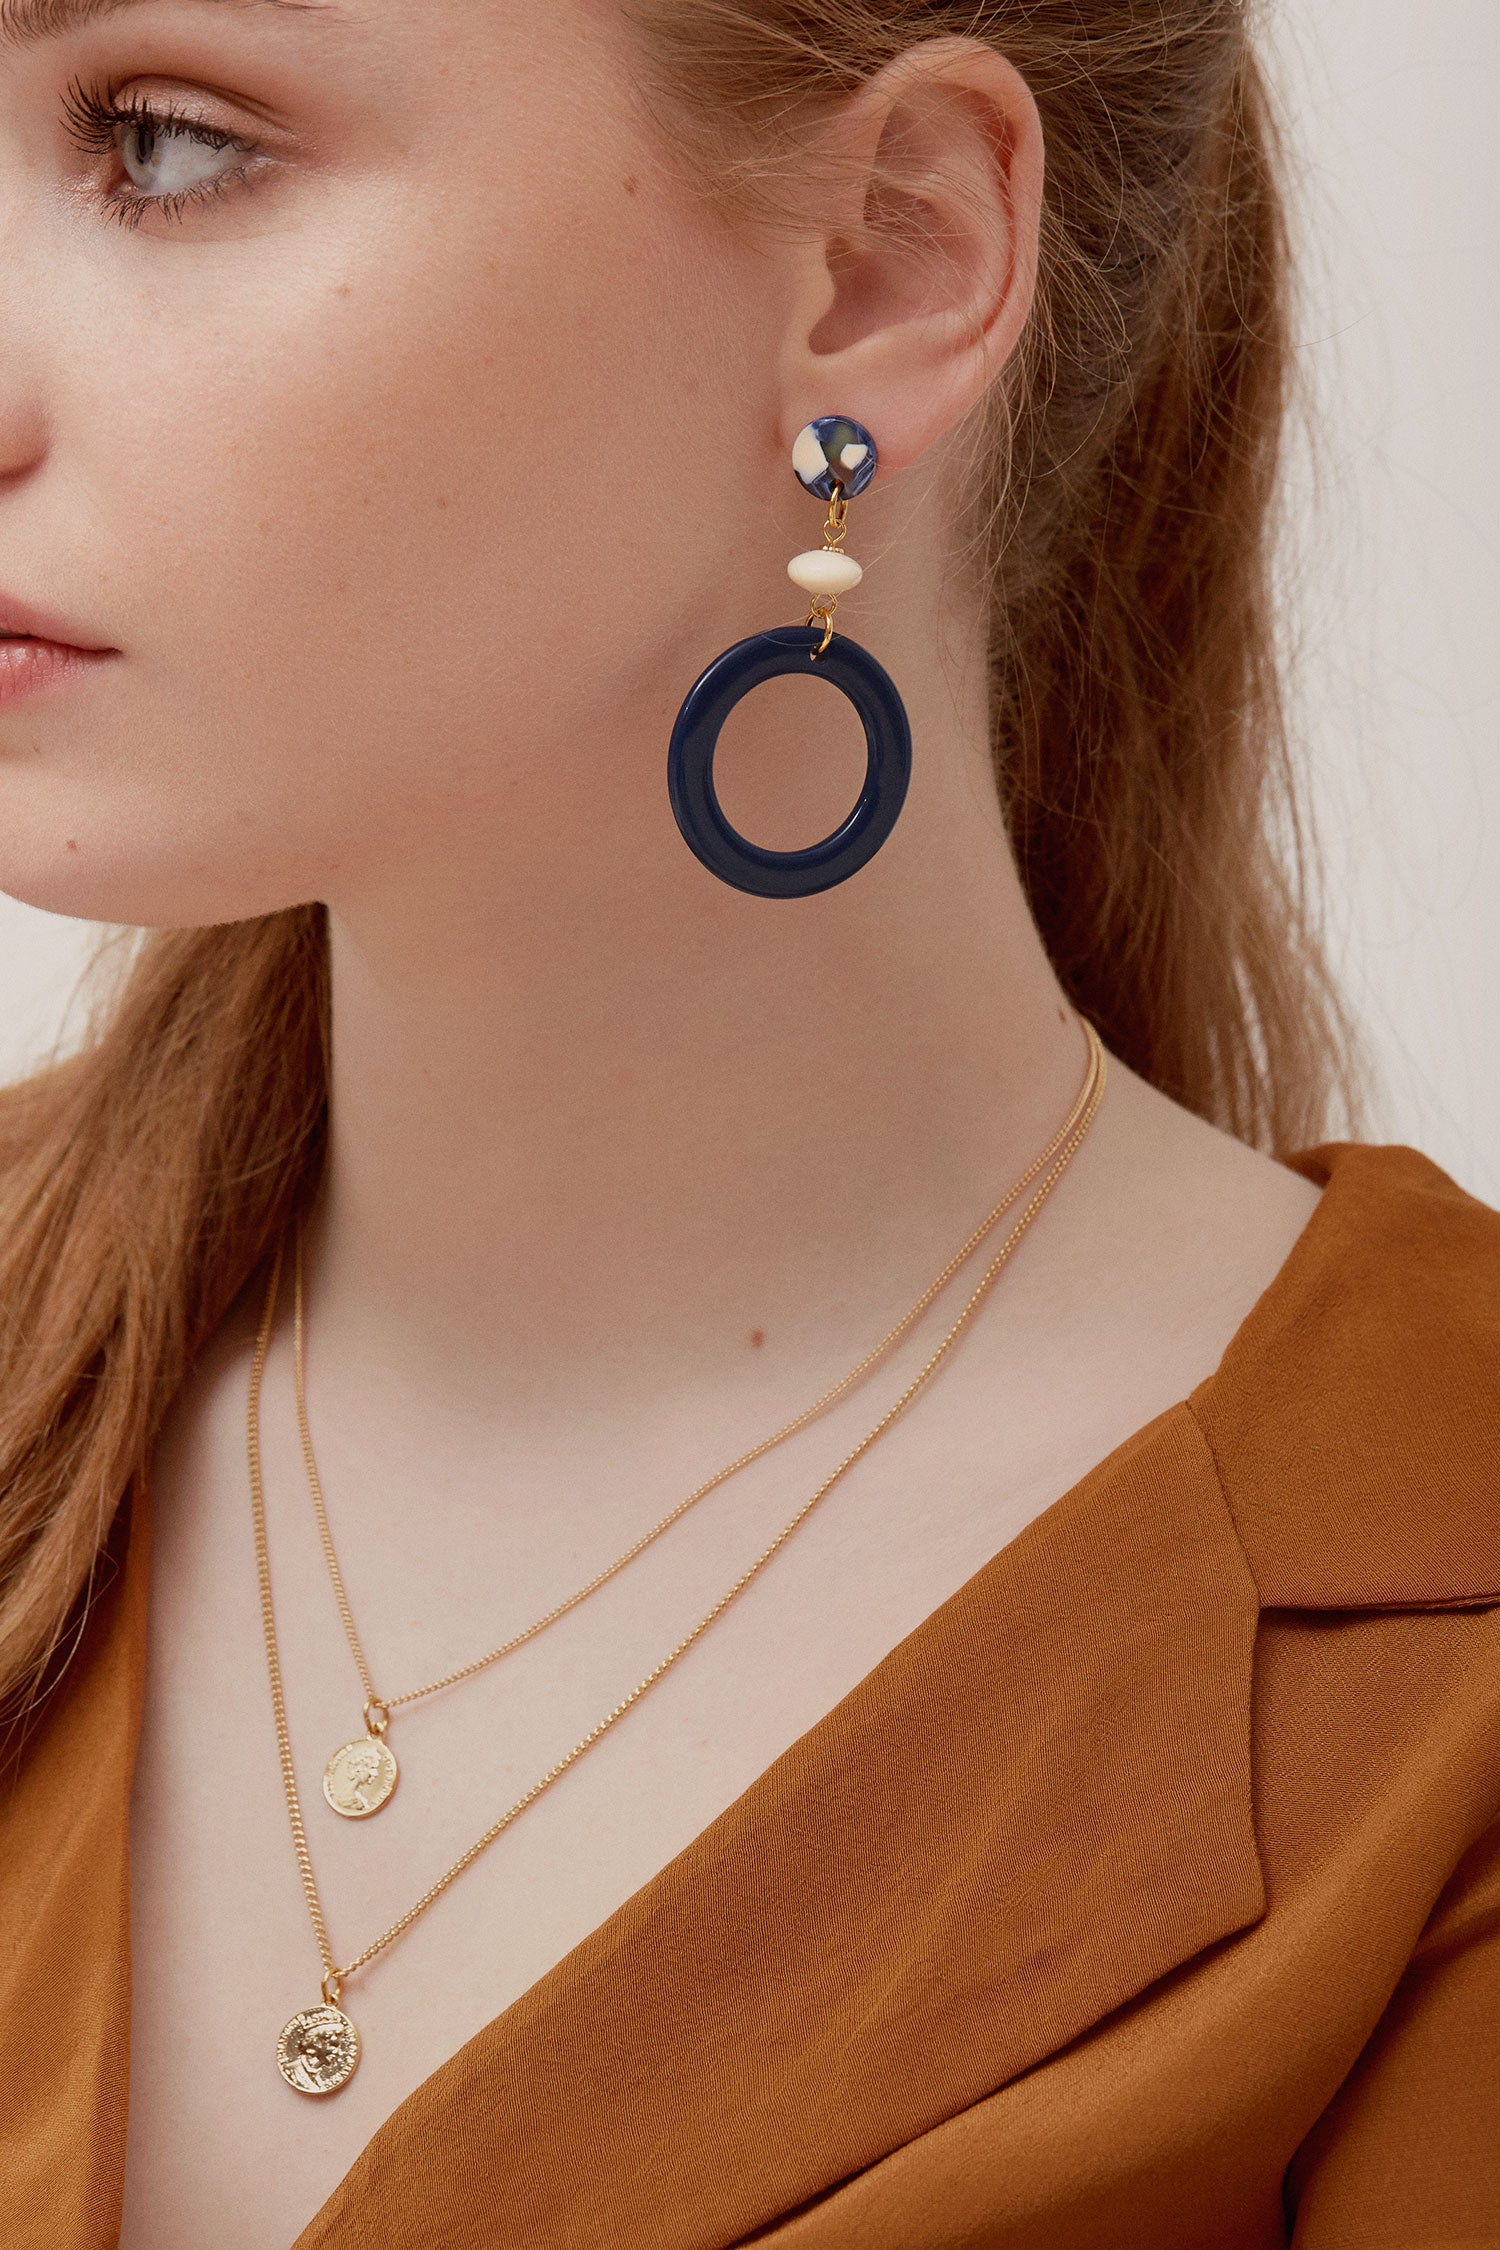 Bologne Earrings in navy and cream (SD1468)